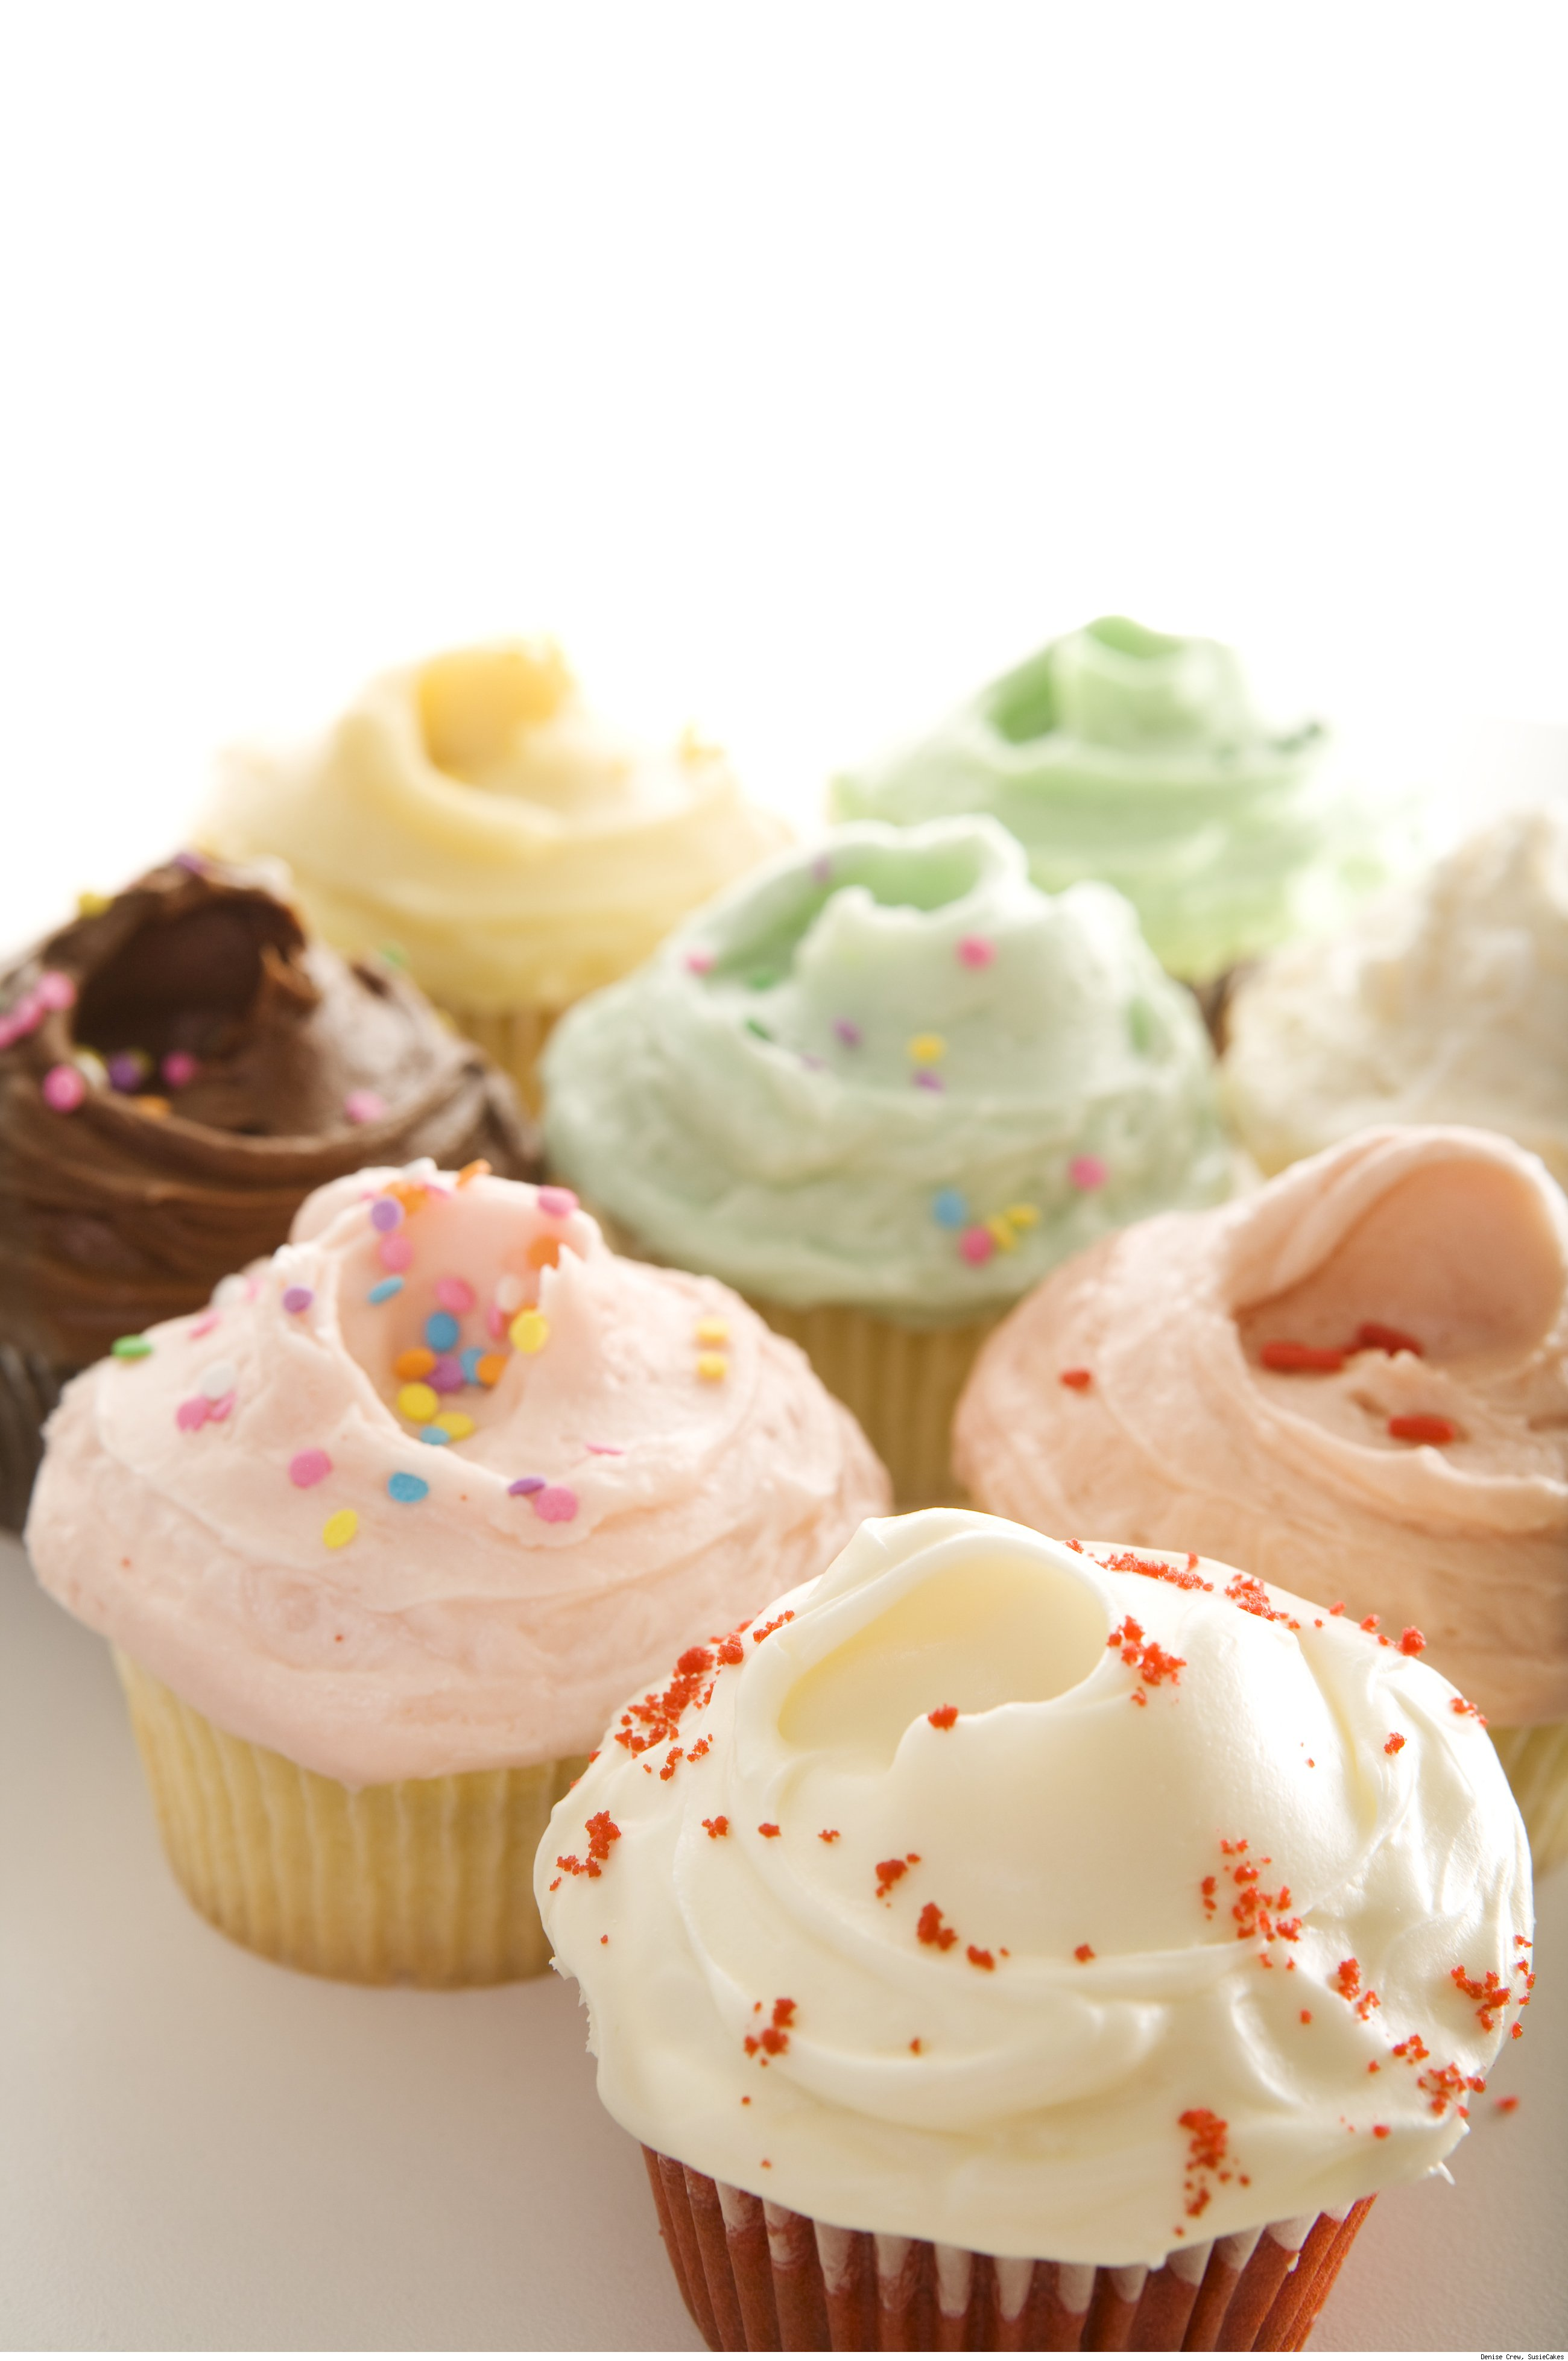 Cupcakes by SusieCakes.